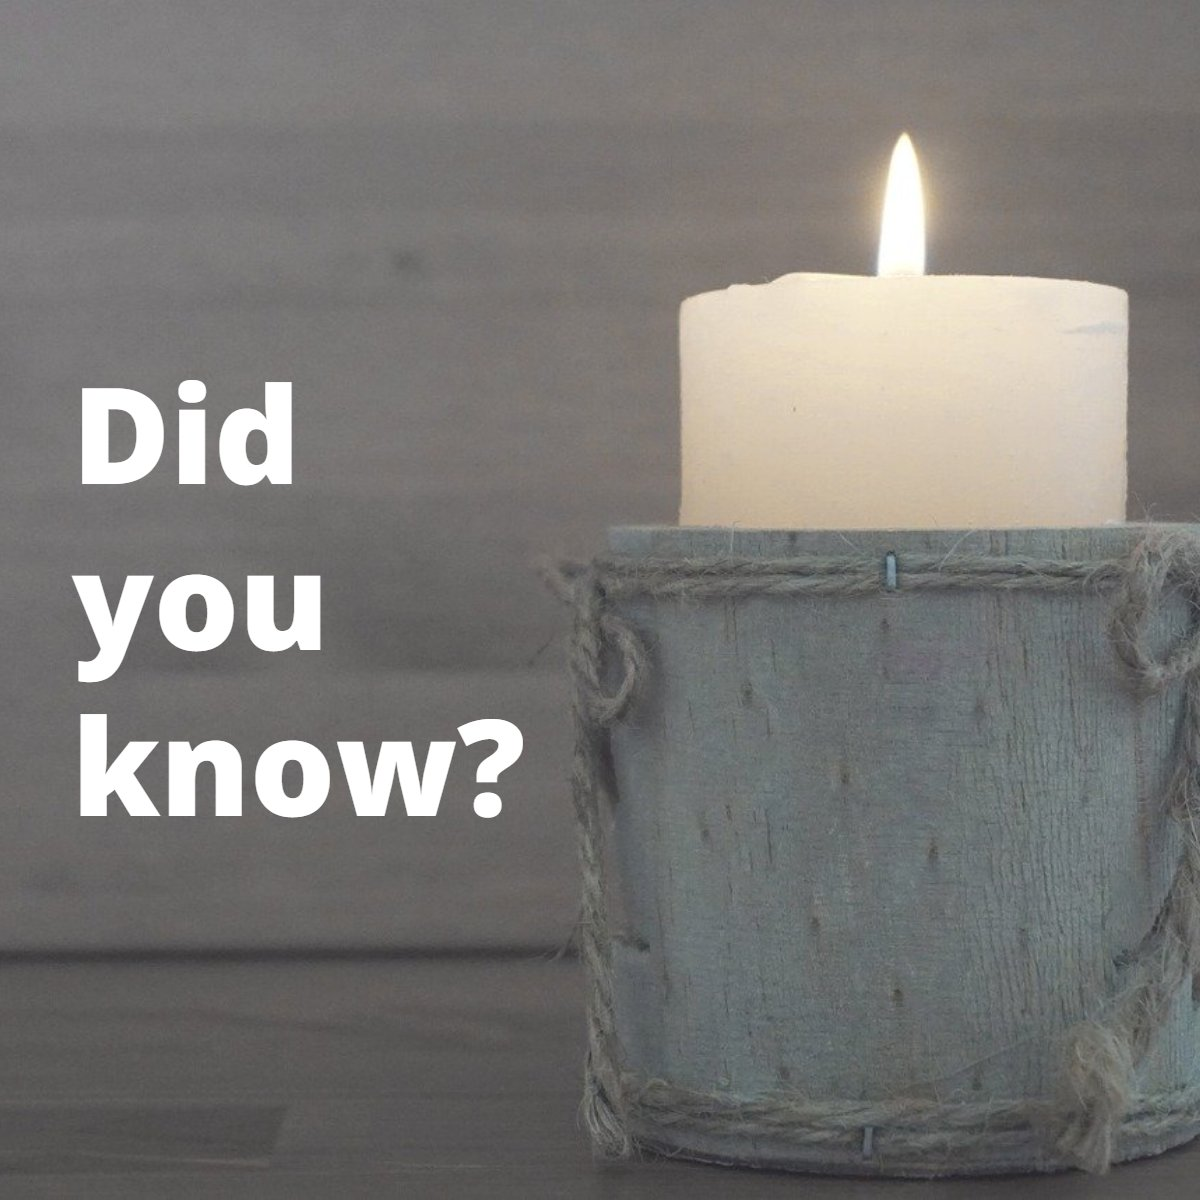 The right scent can immediately transform a space. Try lighting a lavender scented candle or adding an essential oil into the room you spend the most time in. Lavender is known for its soothing and calming abilities, and its gentle aroma may even help relieve stress. pic.twitter.com/XkaU1BZPsU